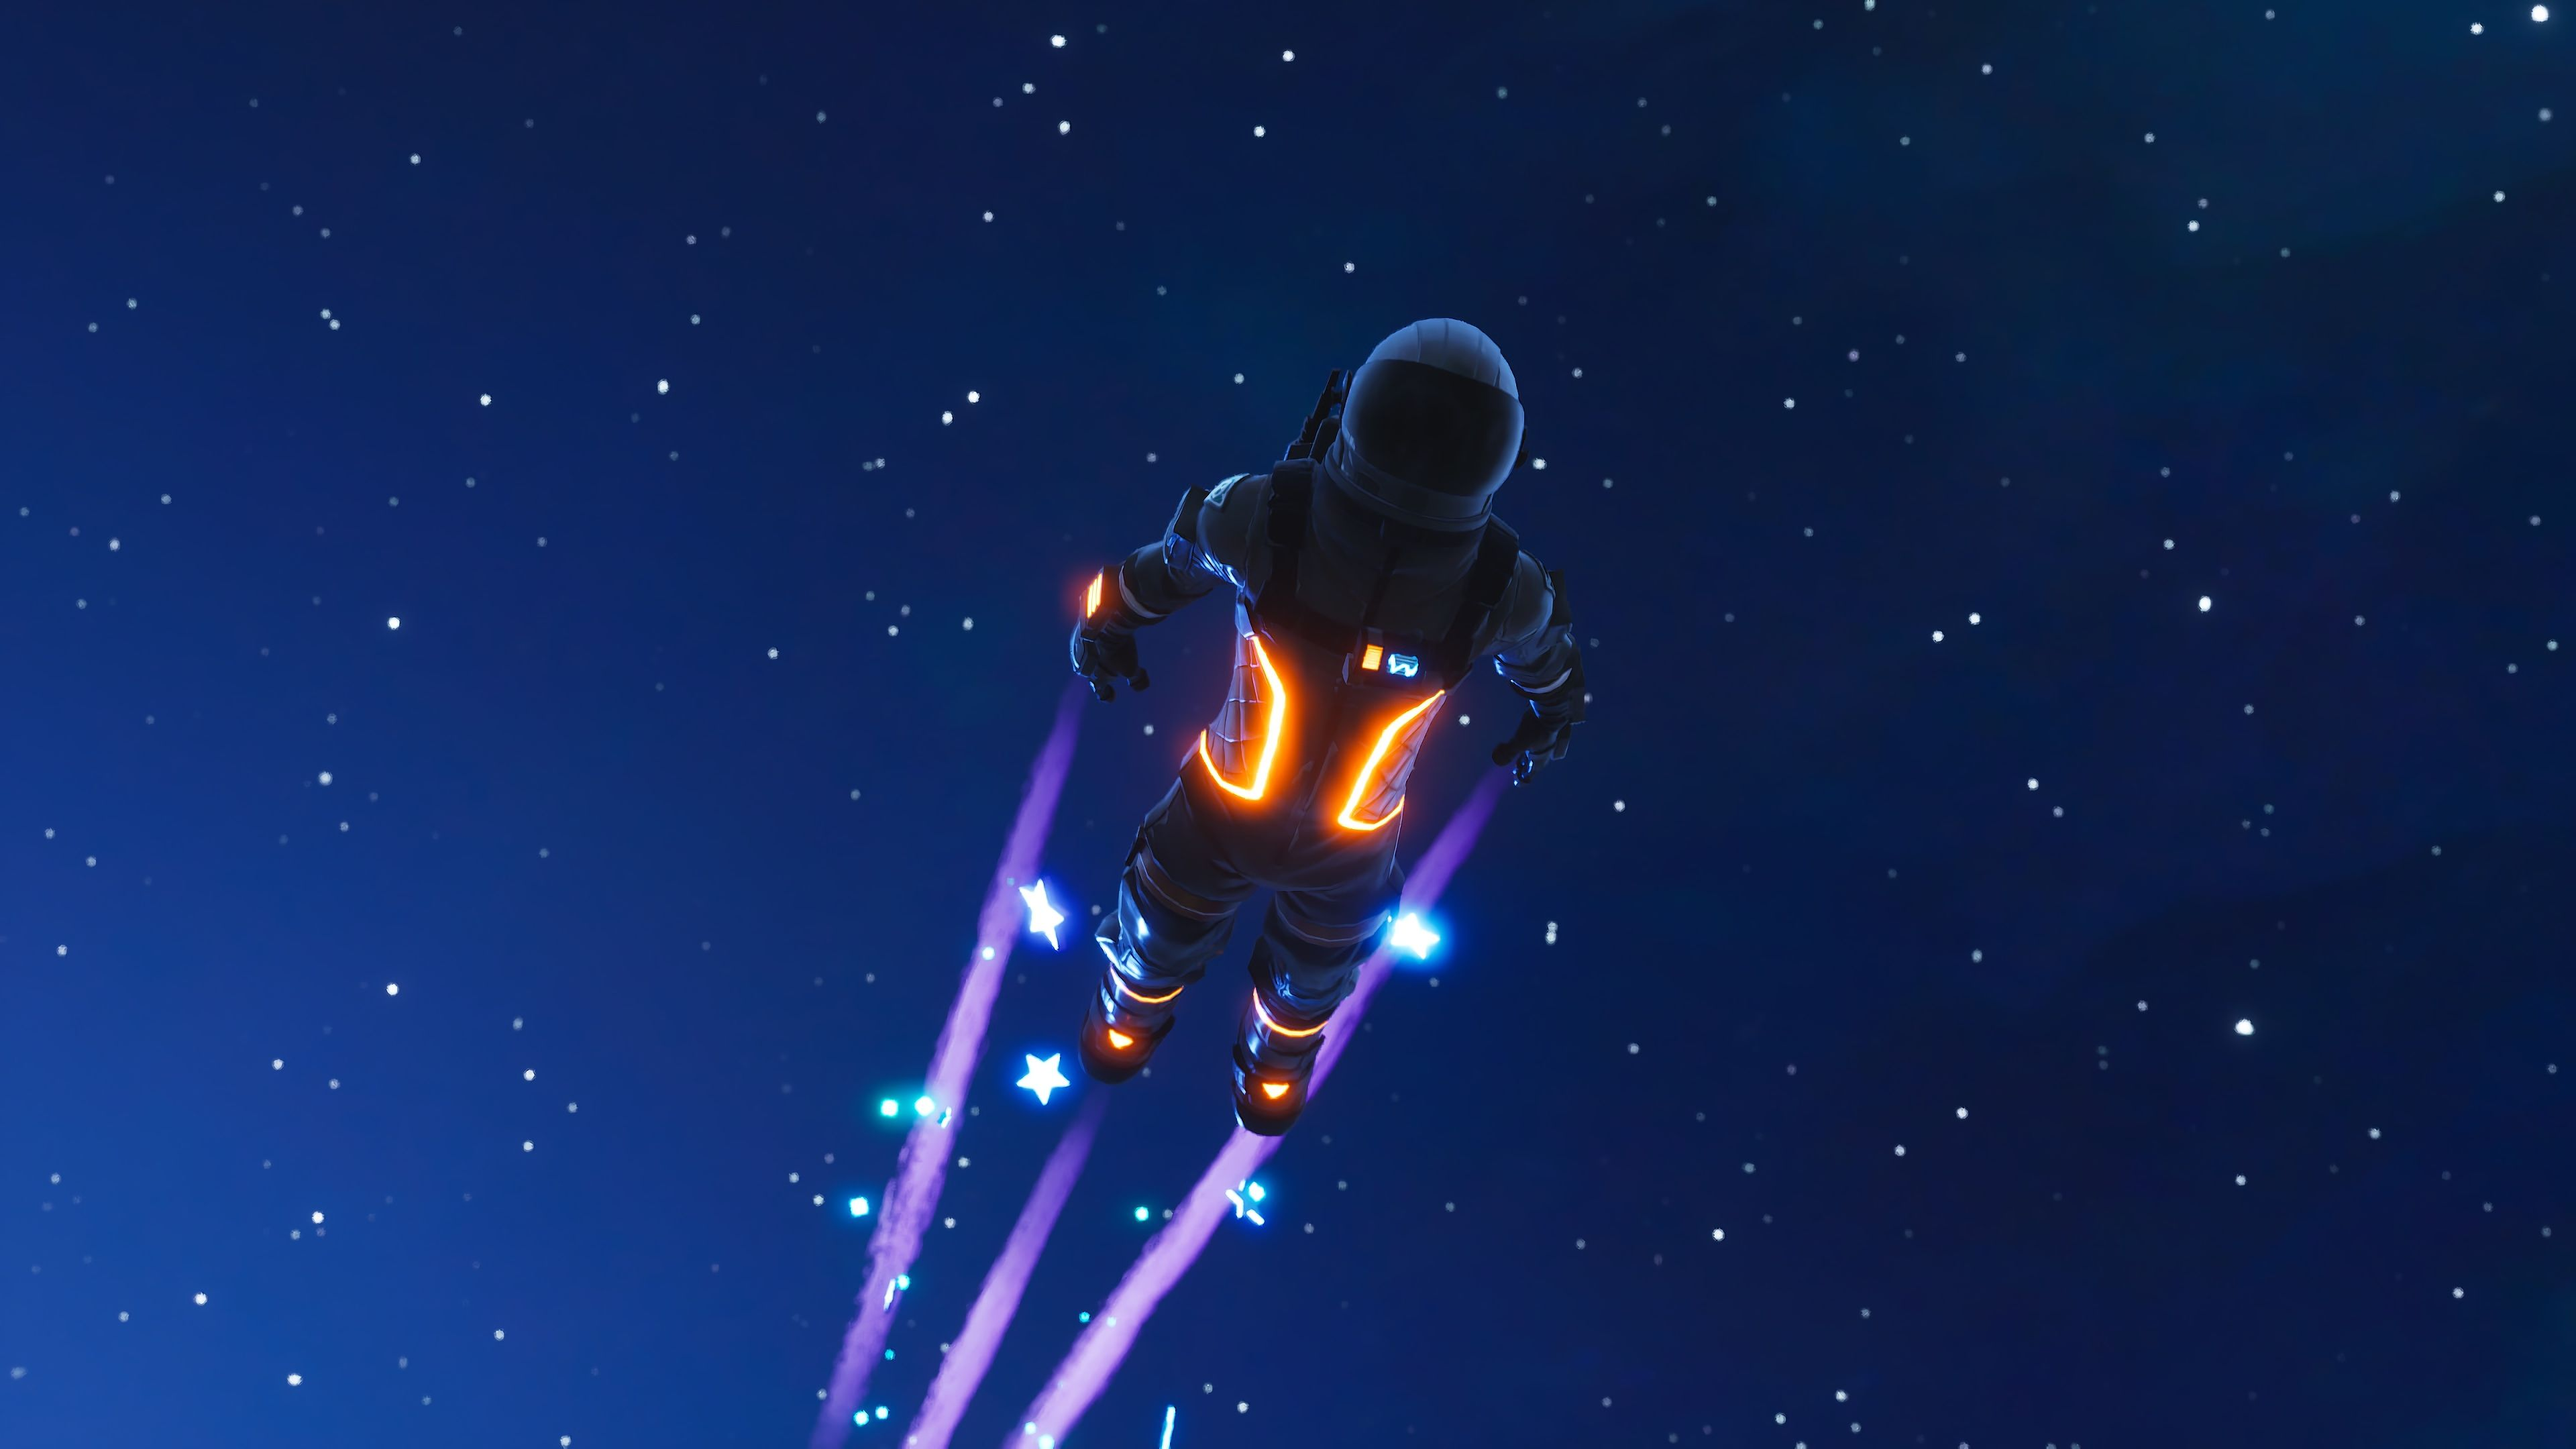 3840x2160 Dark Voyager Skydive Fortnite Battle Royale #4051 Wallpapers and ...